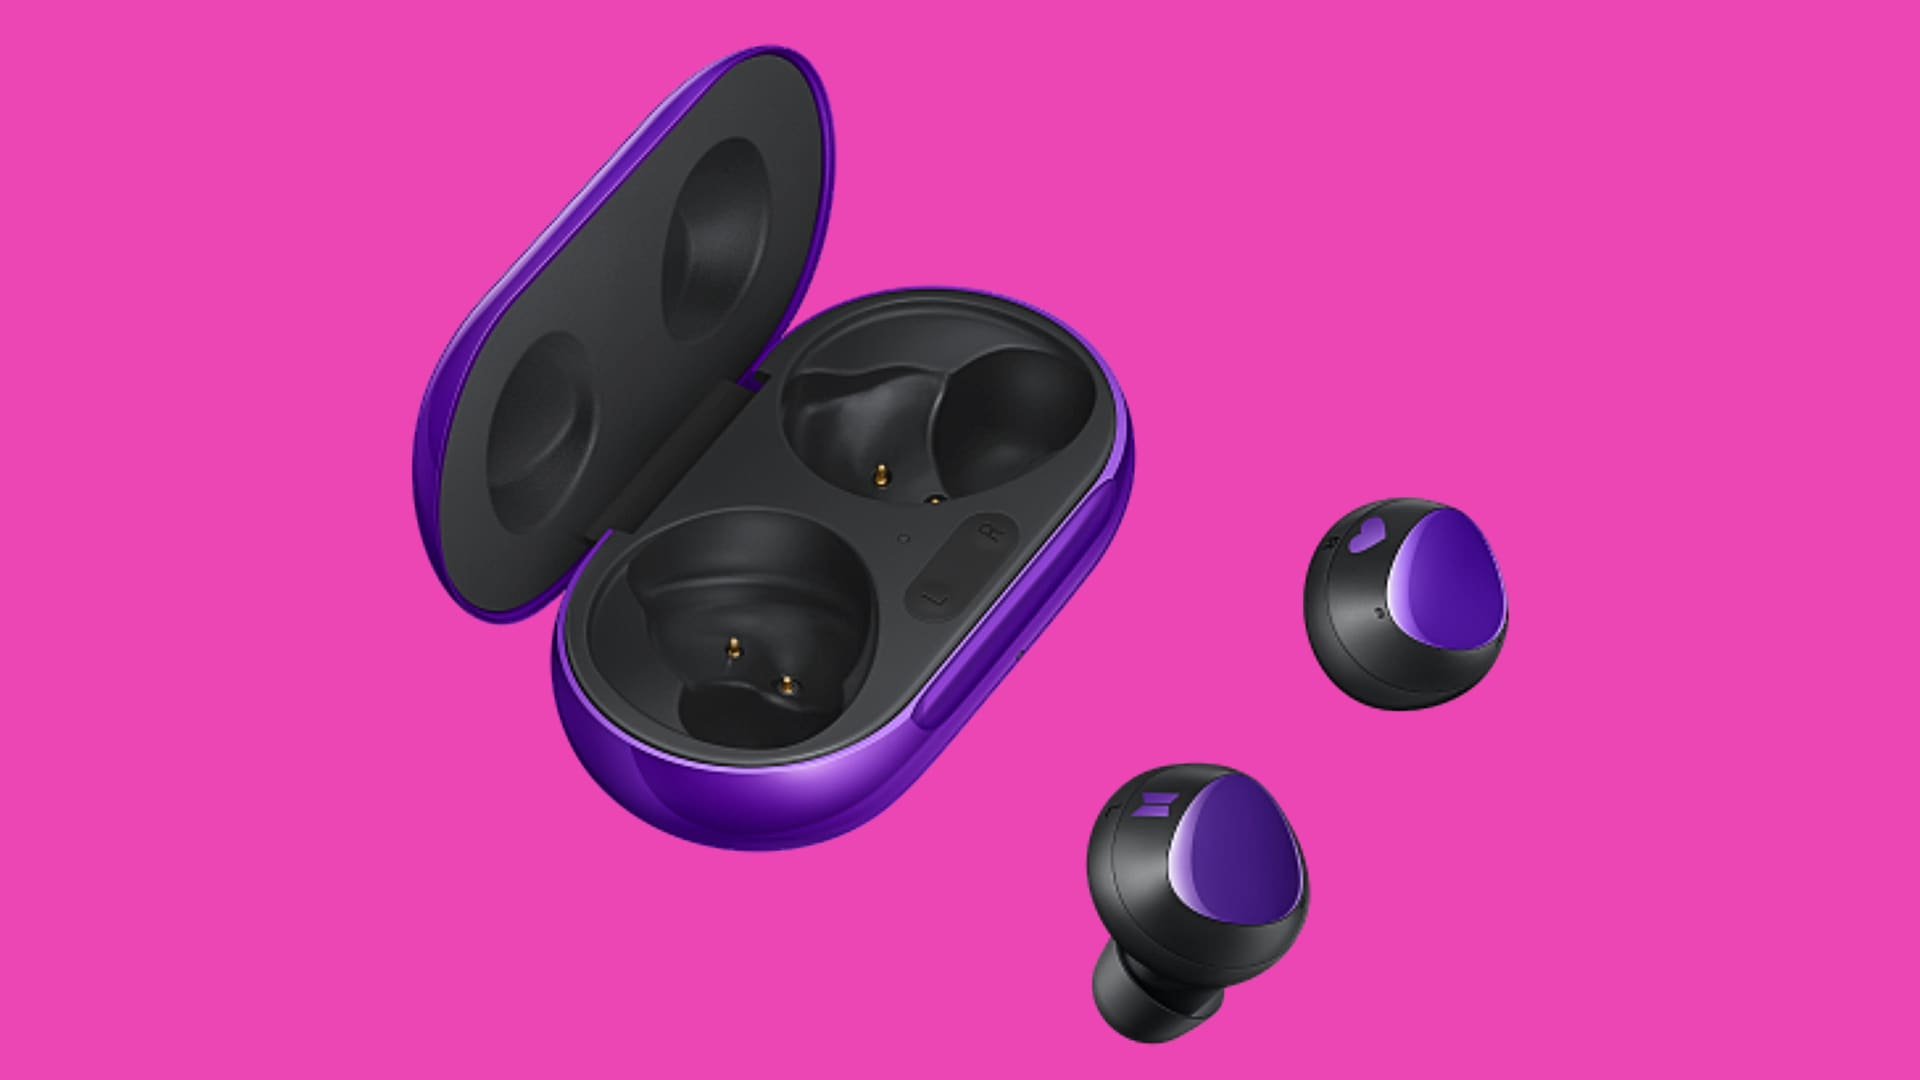 Samsung Galaxy S20 5g Bts Edition Galaxy Buds Bts Edition Launched In The Us And South Korea